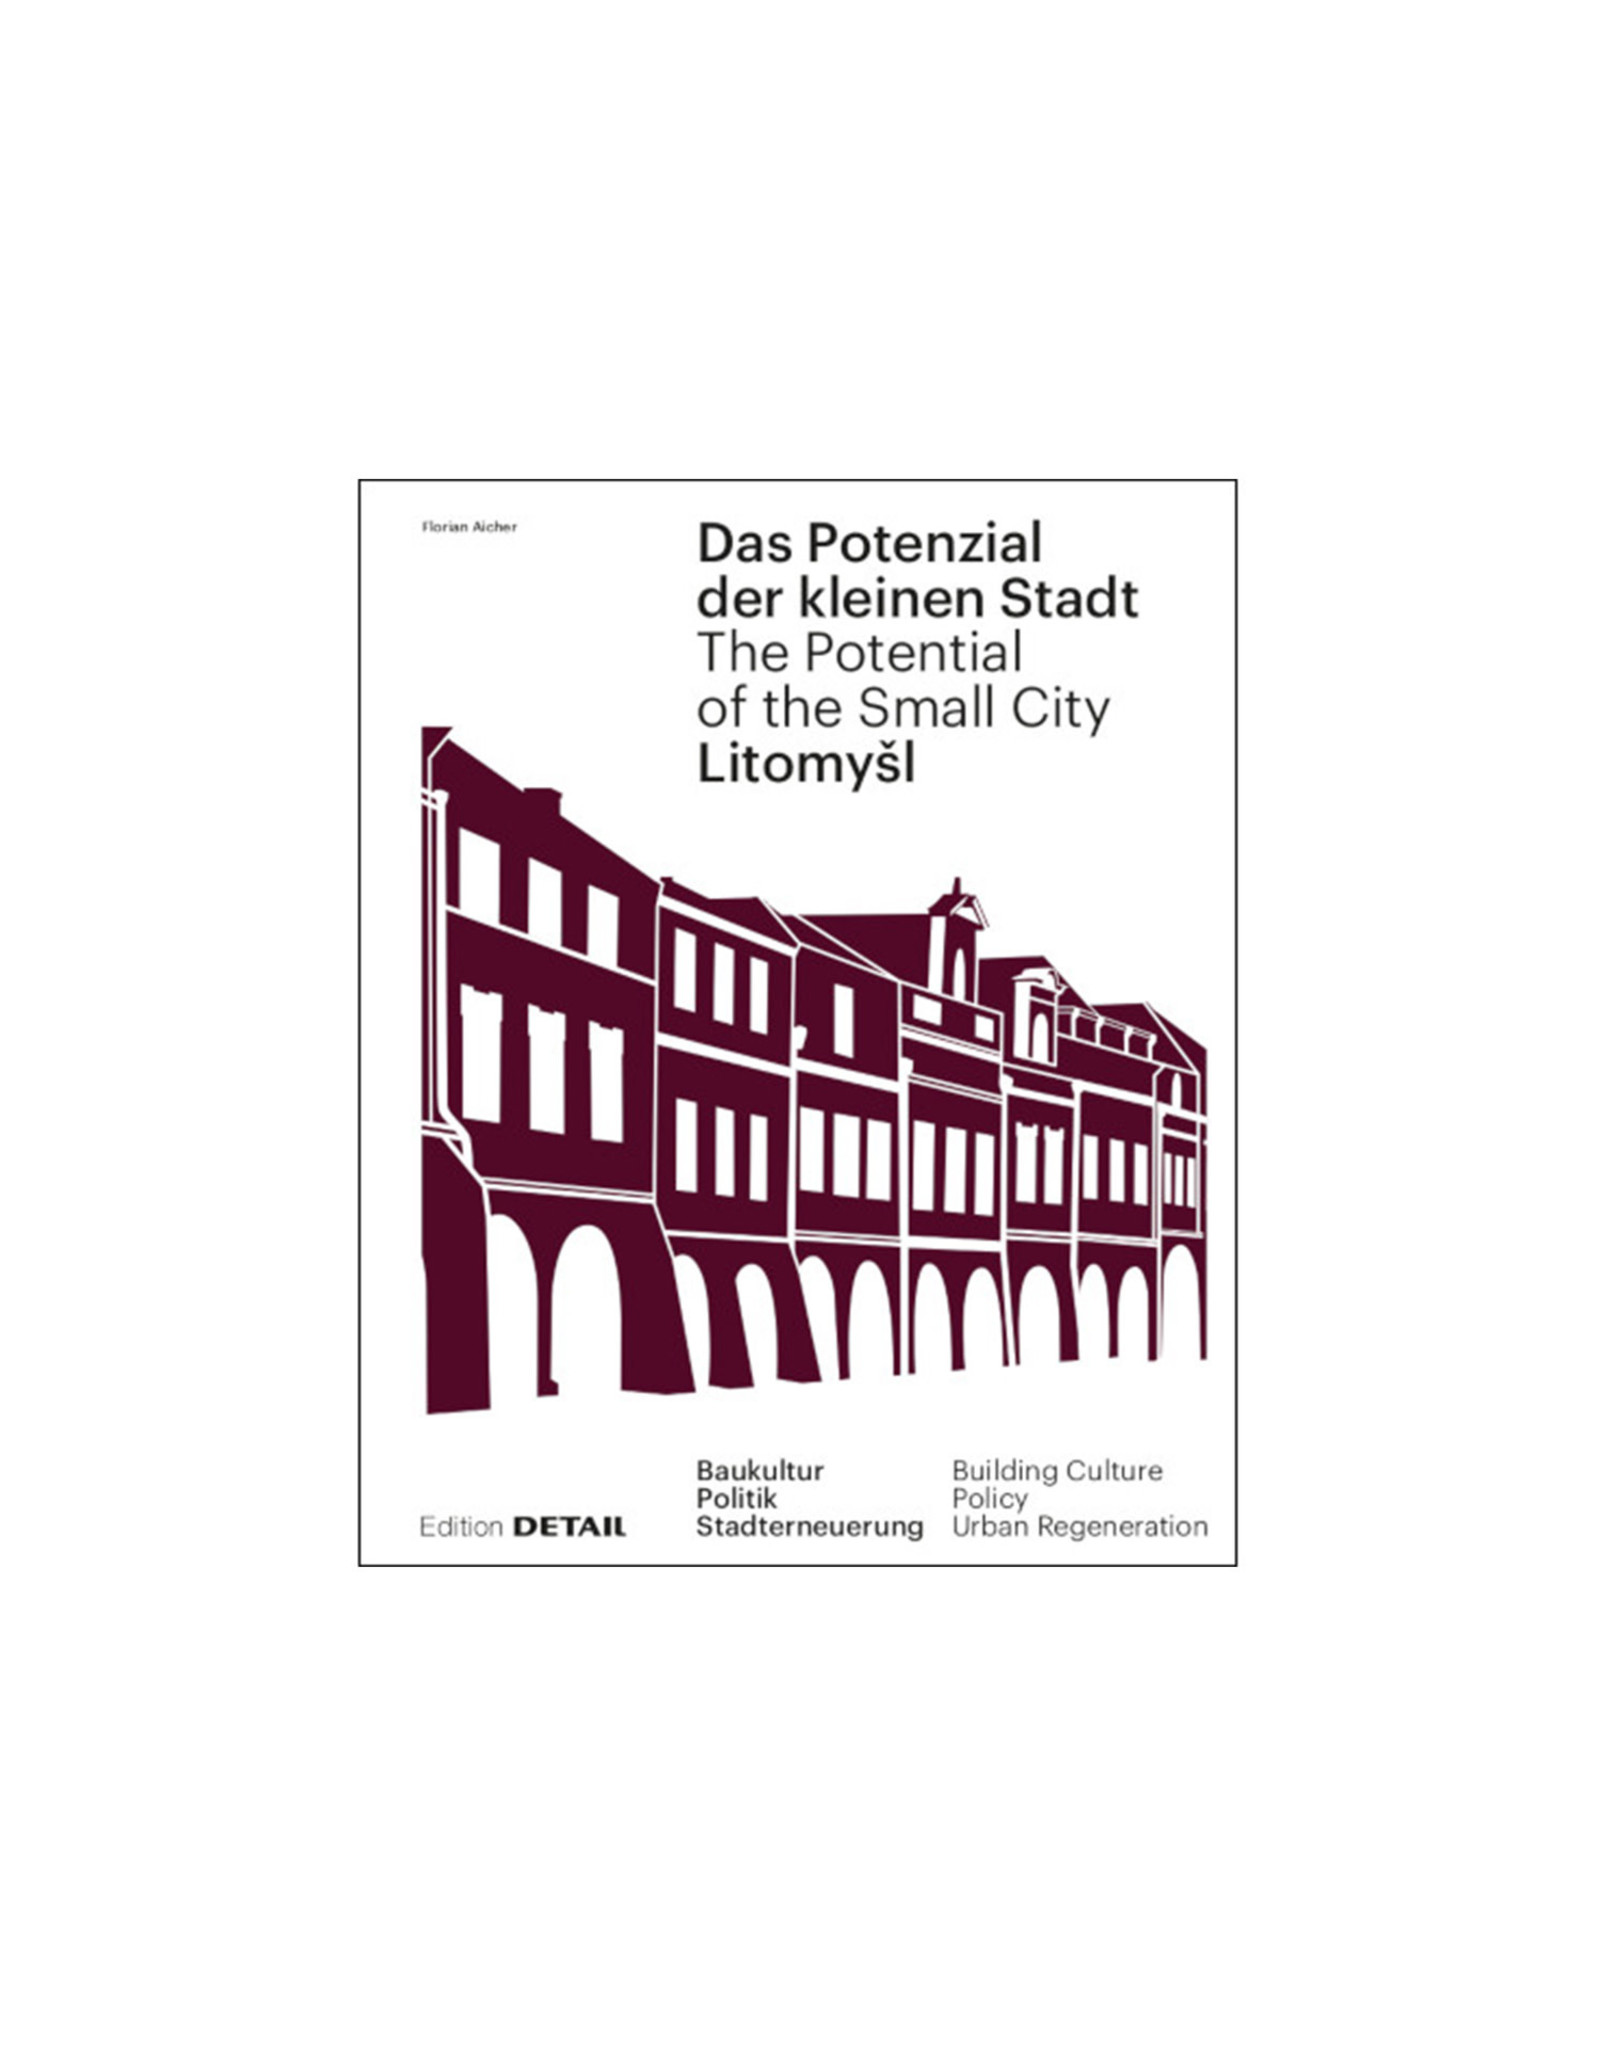 Potential of the Small City of Litomysl